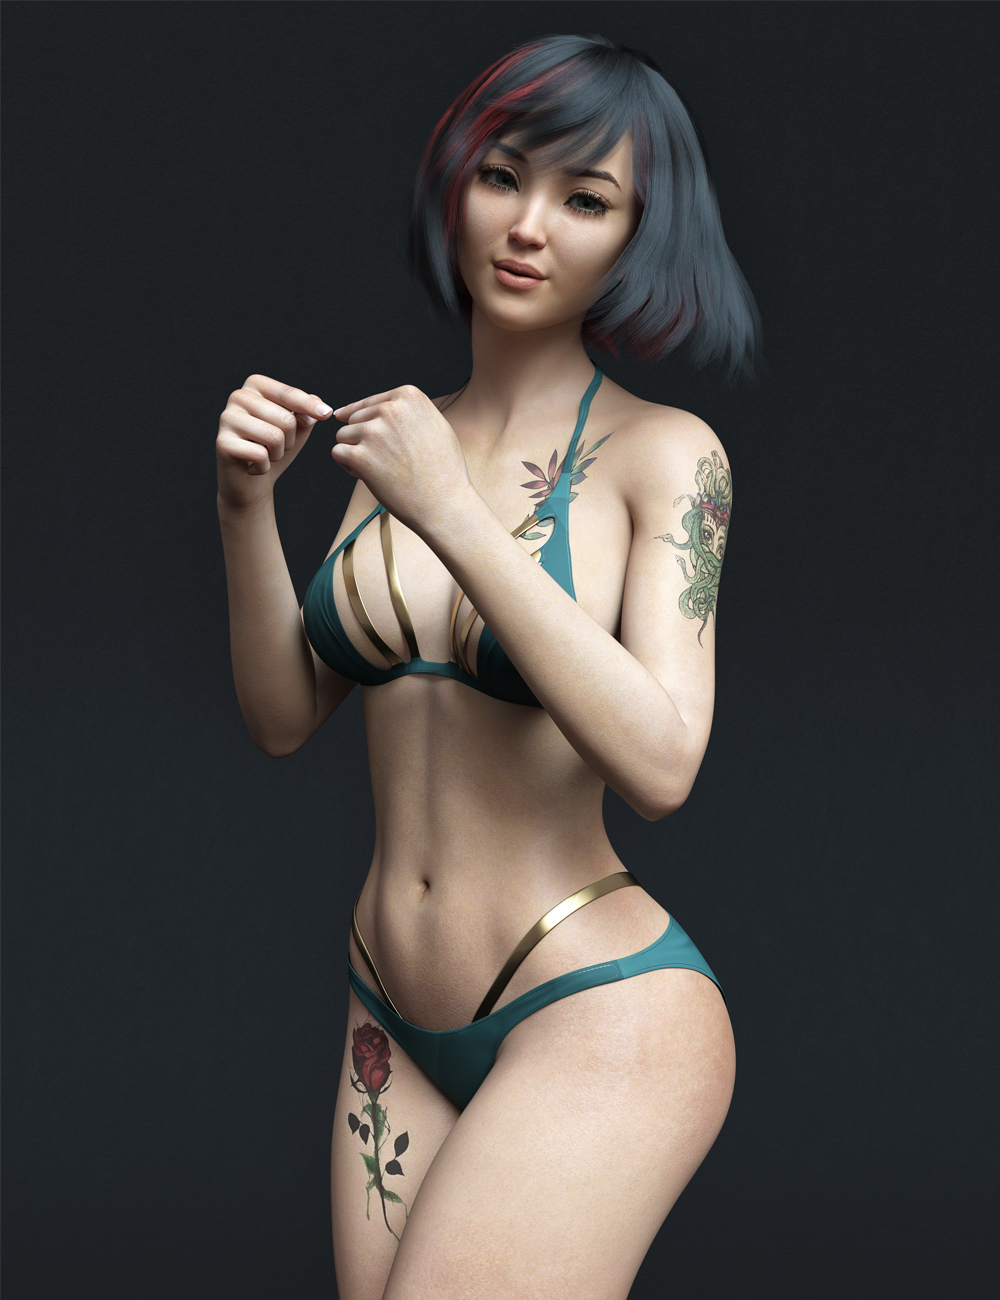 MR Hinata for Genesis 8.1 Female by: Marcius, 3D Models by Daz 3D